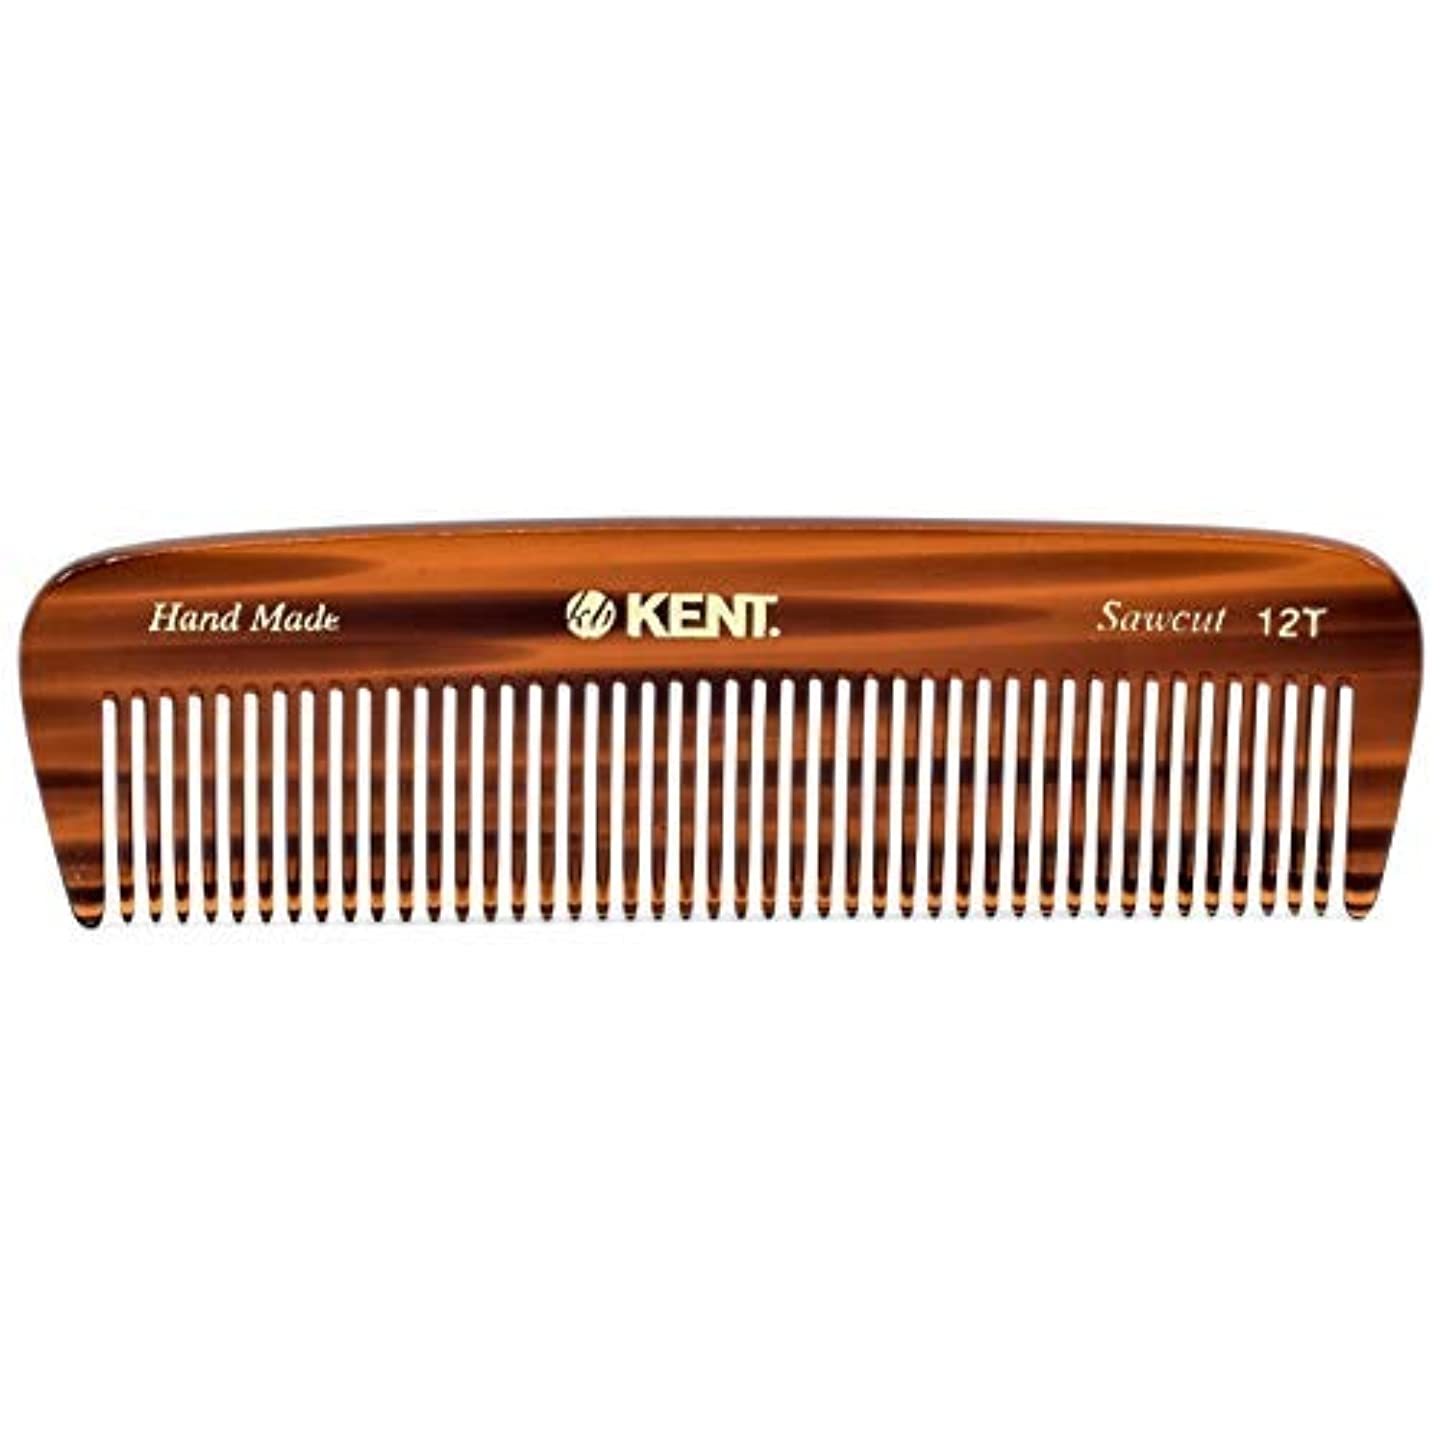 有名人ボクシングコールKent 12T Handmade Medium Size Teeth for Thick/Coarse Hair Comb for Men/Women - For Grooming, Styling, and Detangling...